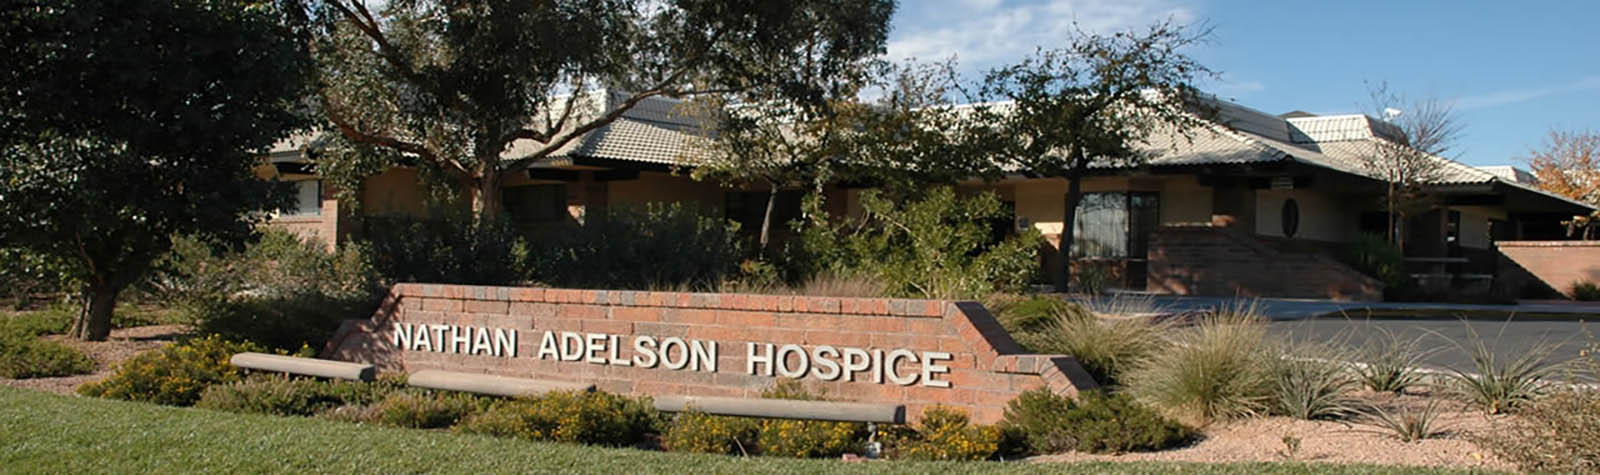 Nathan Adelson Hospice Acquiring Kindred Hospice